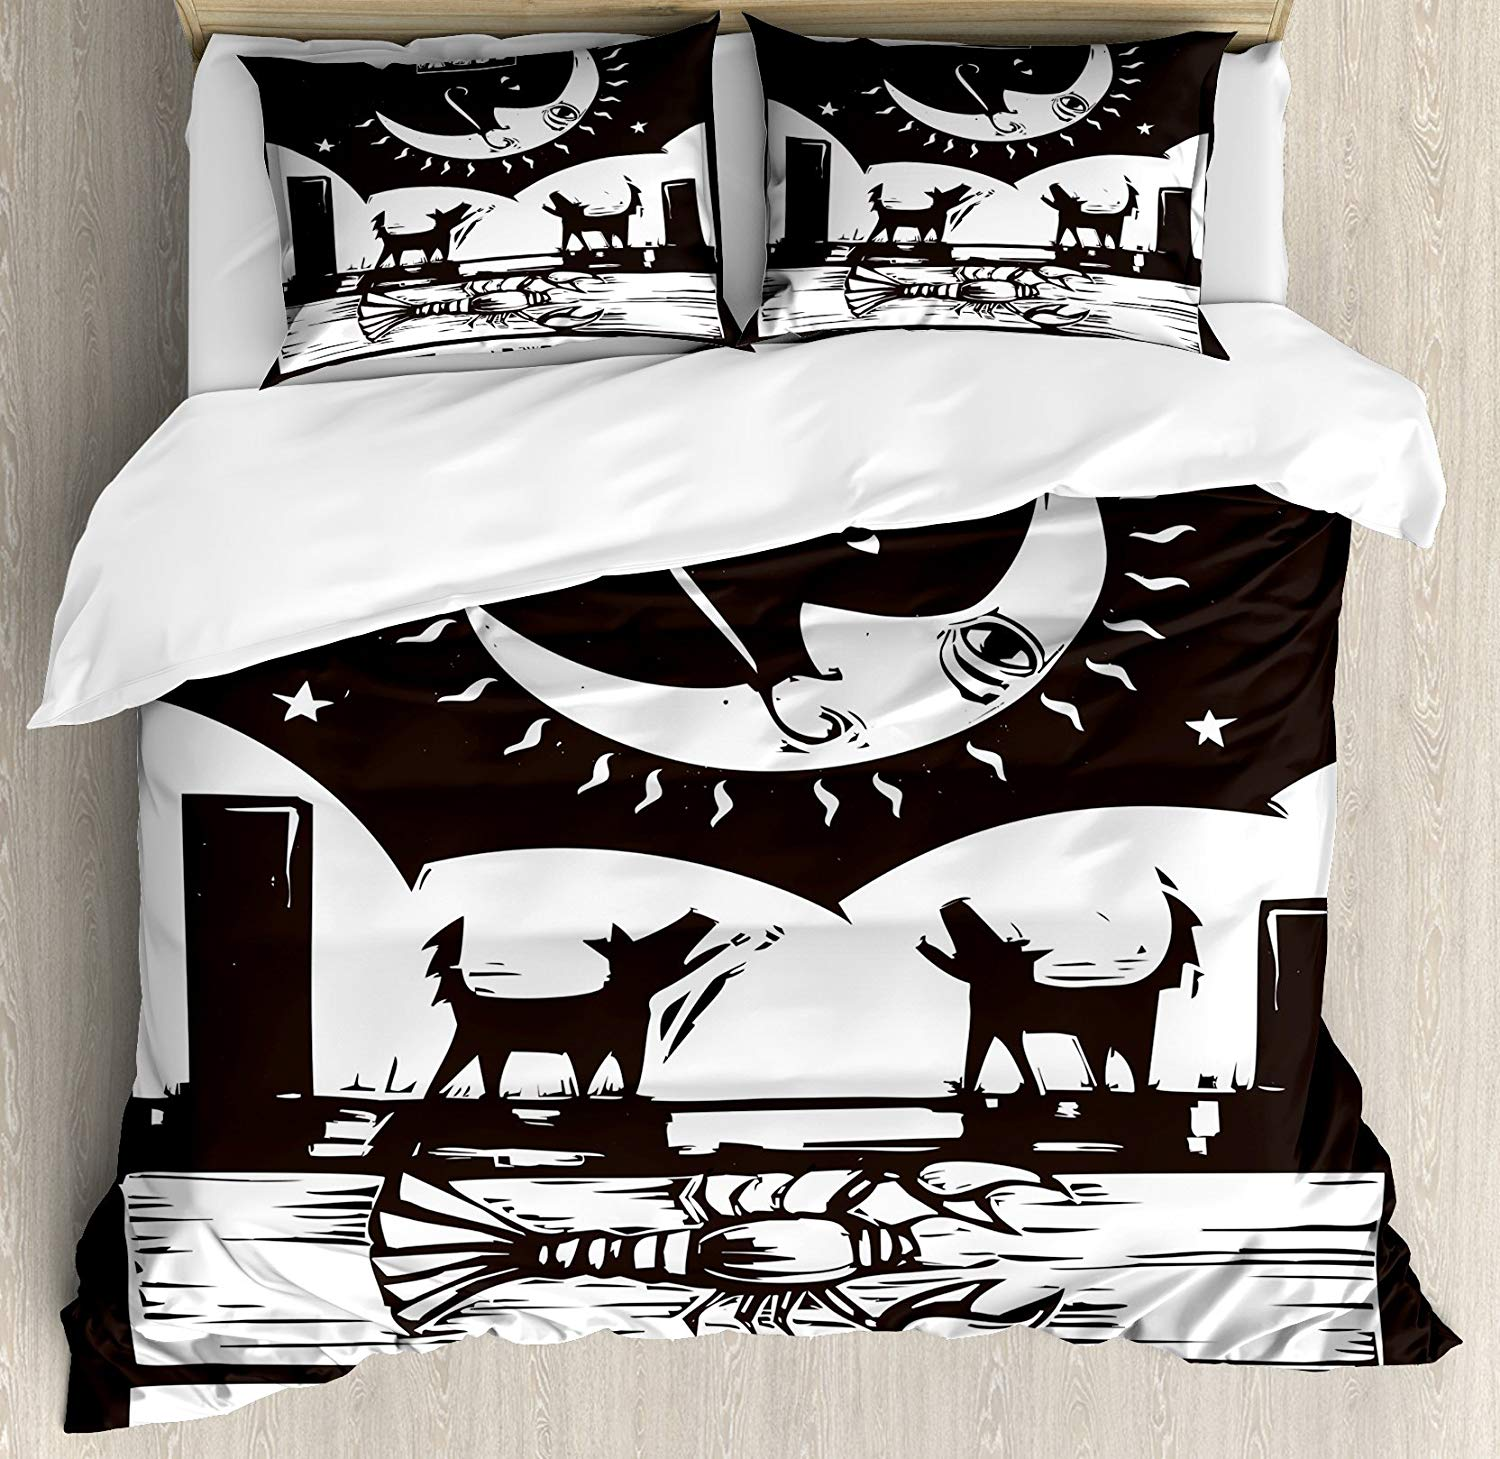 Moon Duvet Cover Set, Brown White Drawing Lobster Wolves Crescent Moon Stars Tarot Card Design, 4 Piece Bedding Set